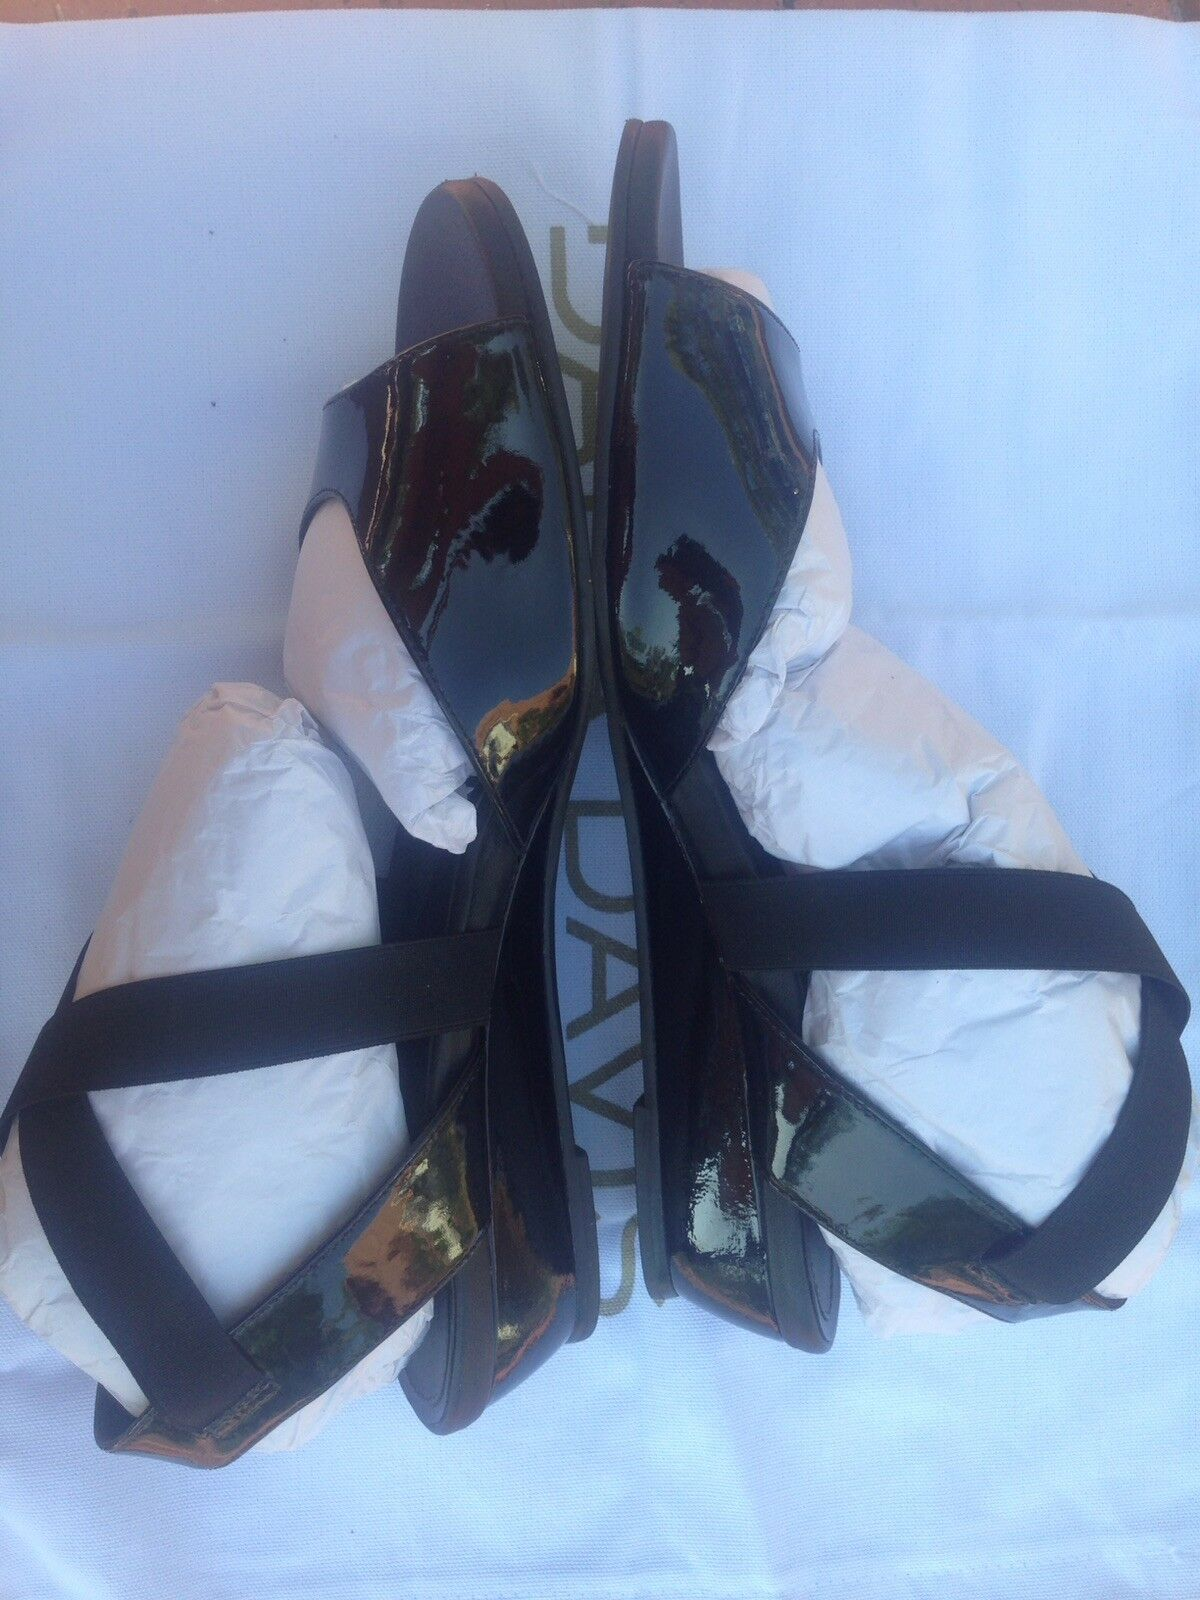 NEW in Box DANA DAVIS Black Patent Leather Susie Susie Susie Sandals Size 10 shoes Orig.  370 c2c3d7